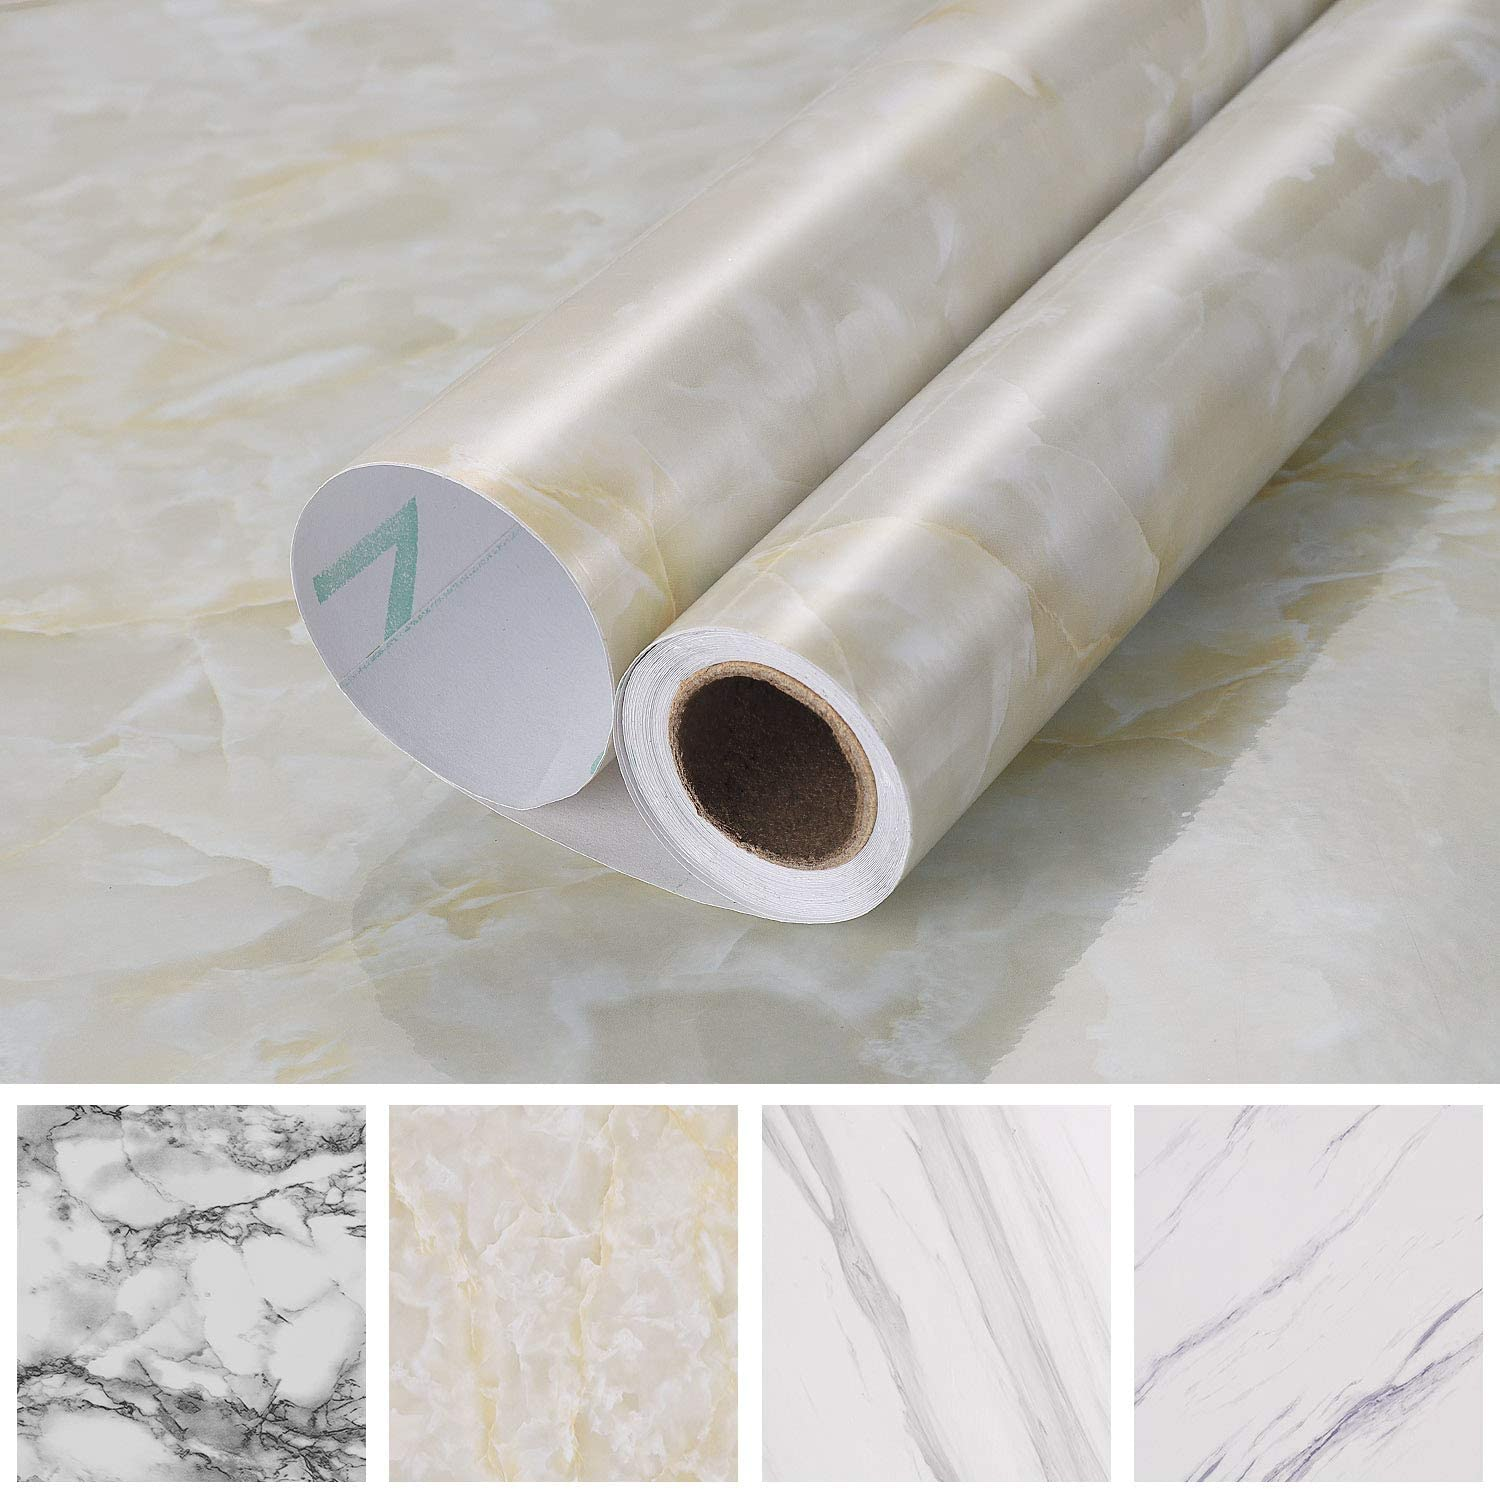 New Marble Self Adhesive Paper Decor Cover Vinyl Waterproof 15.8 X 78.8 Inches